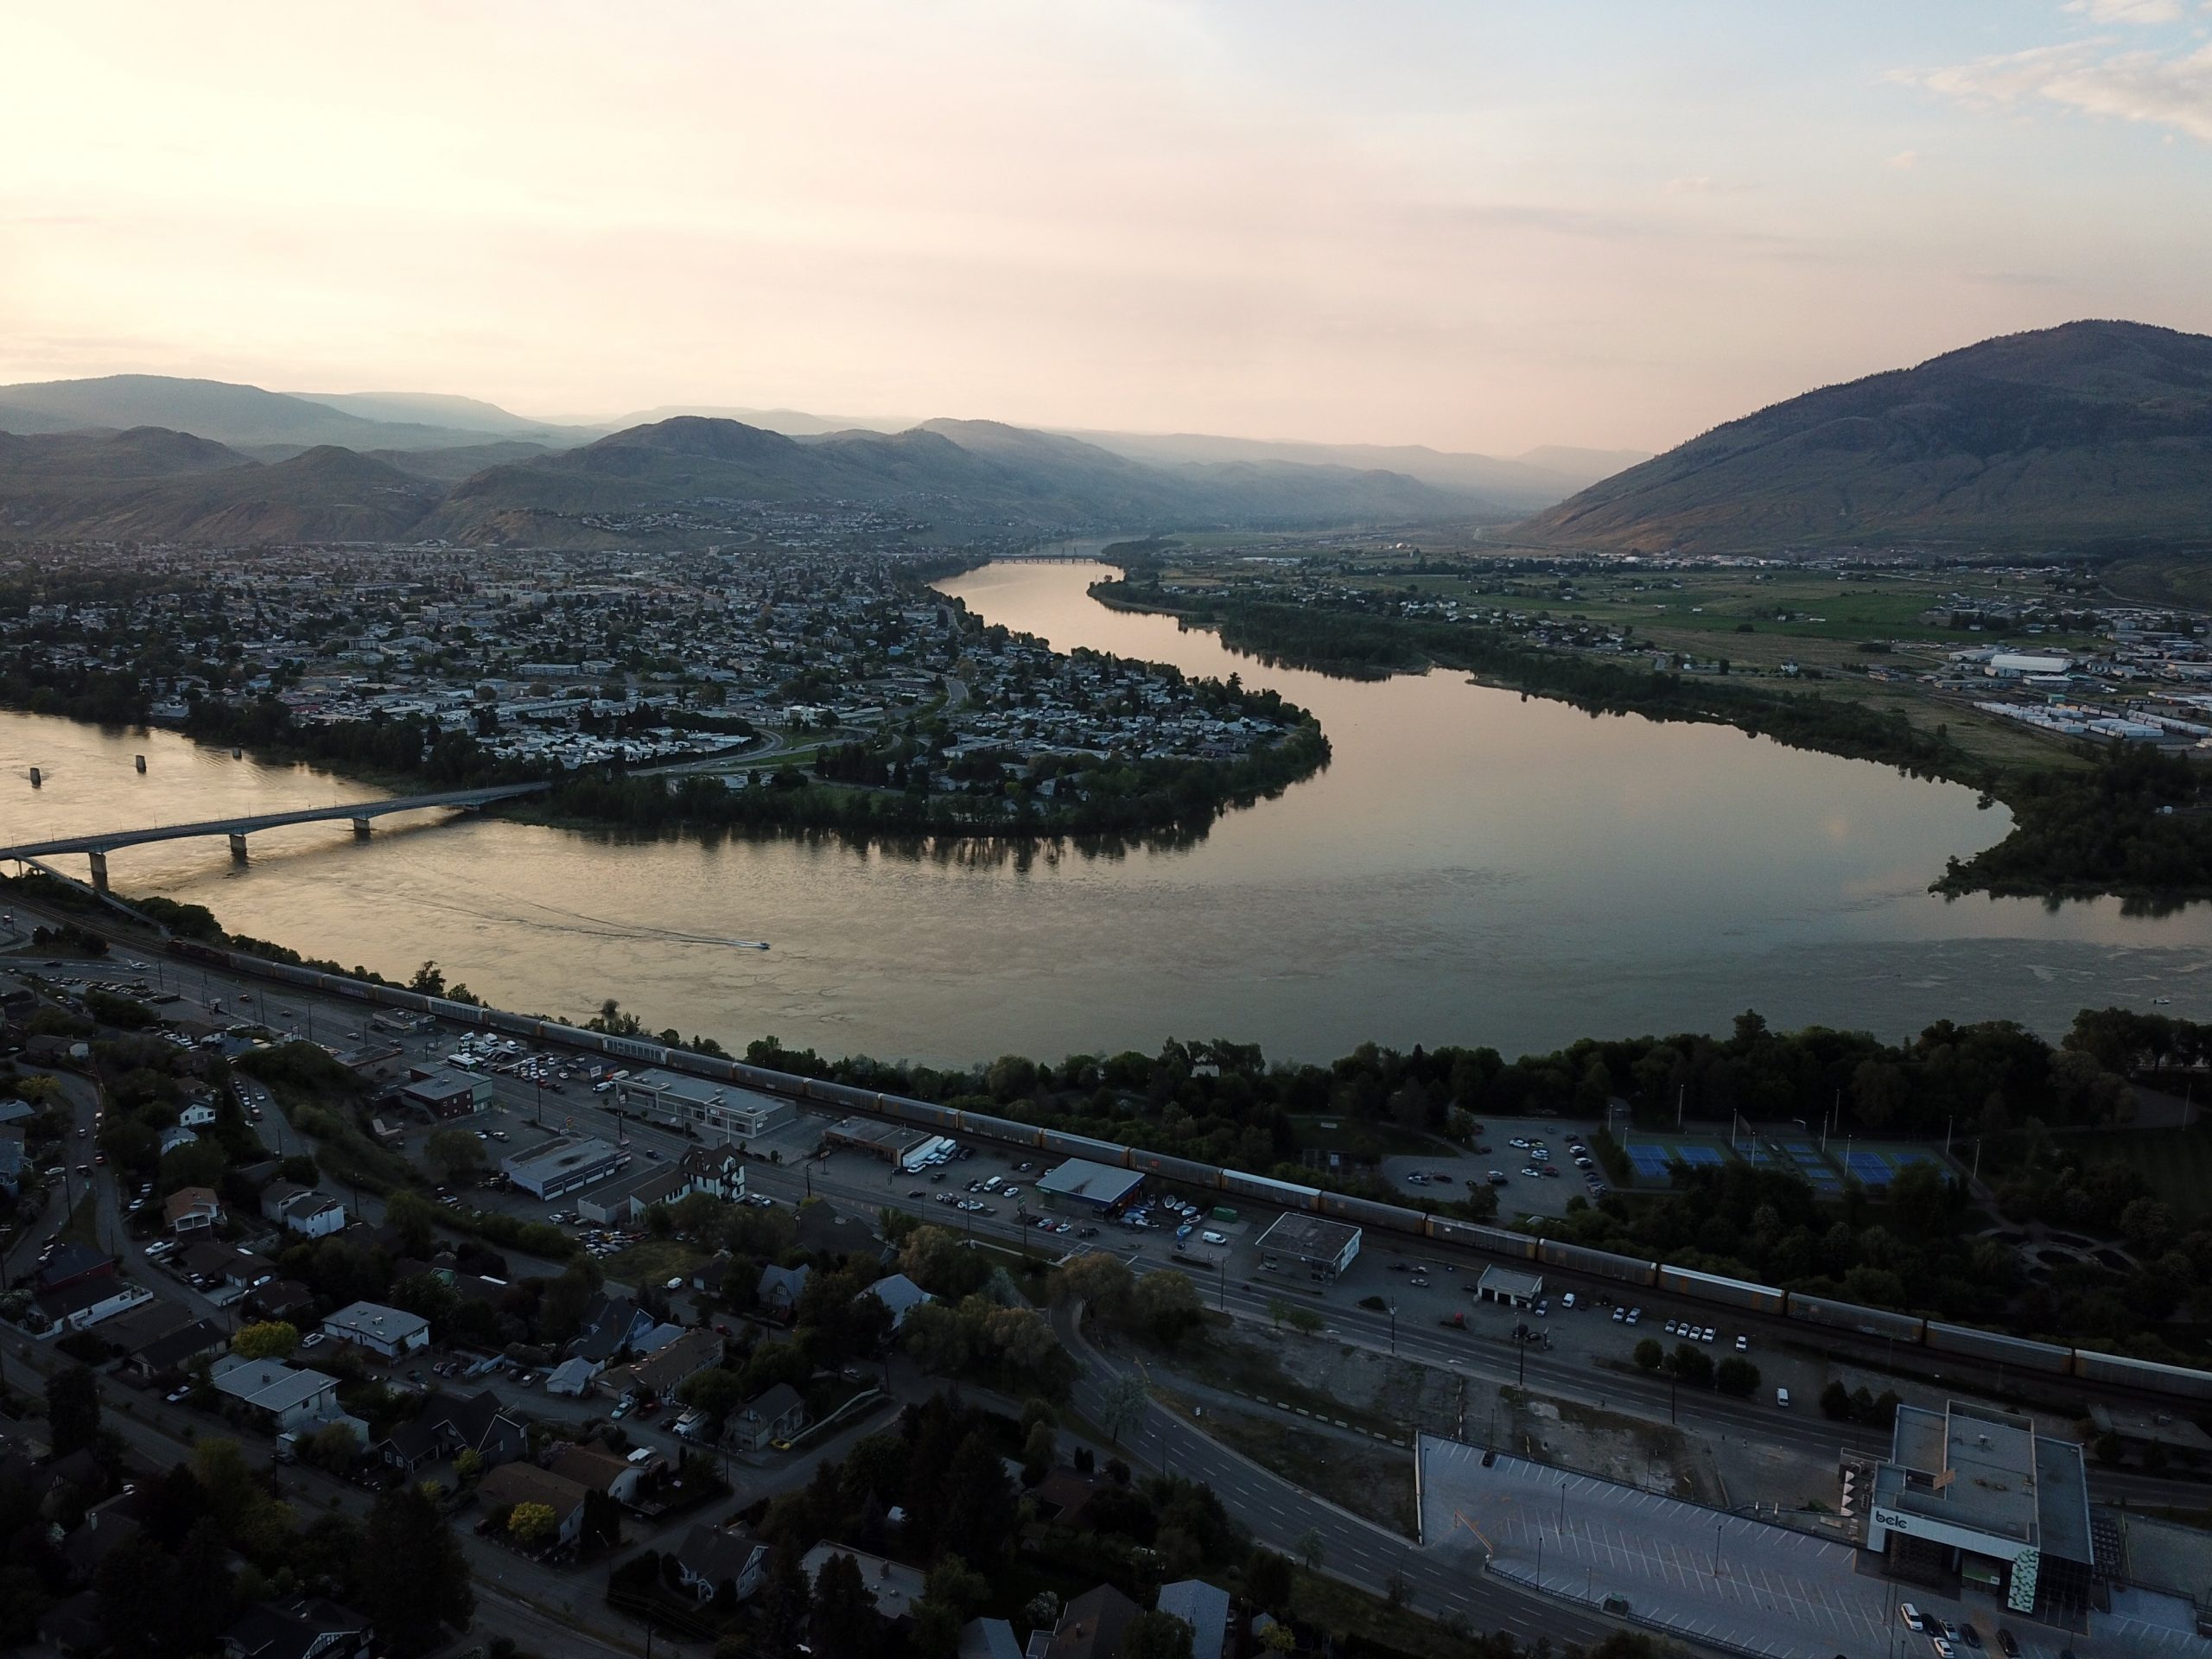 City of Kamloops officials already starting to plan for another river crossing